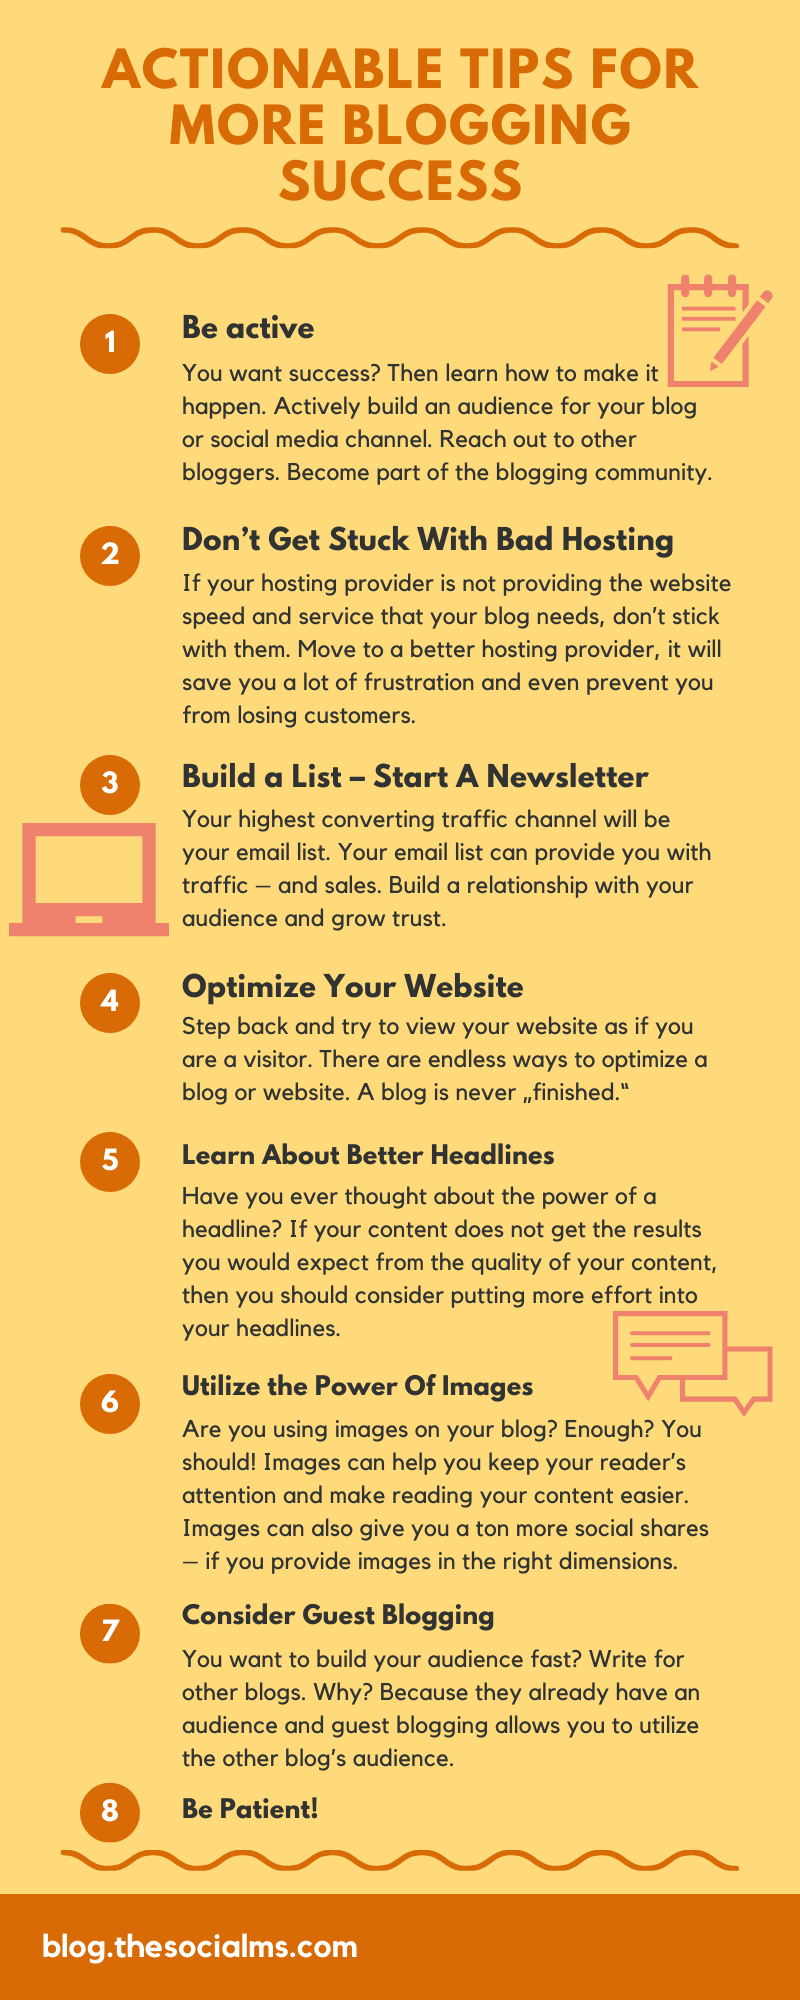 for success, you need to keep your eyes open for new opportunities and best practices, for ideas and better solutions. here are actionable tips for you that you can use to get more out of your blogging efforts. #bloggingtips #blogging101 #bloggingforbeginners #startablog